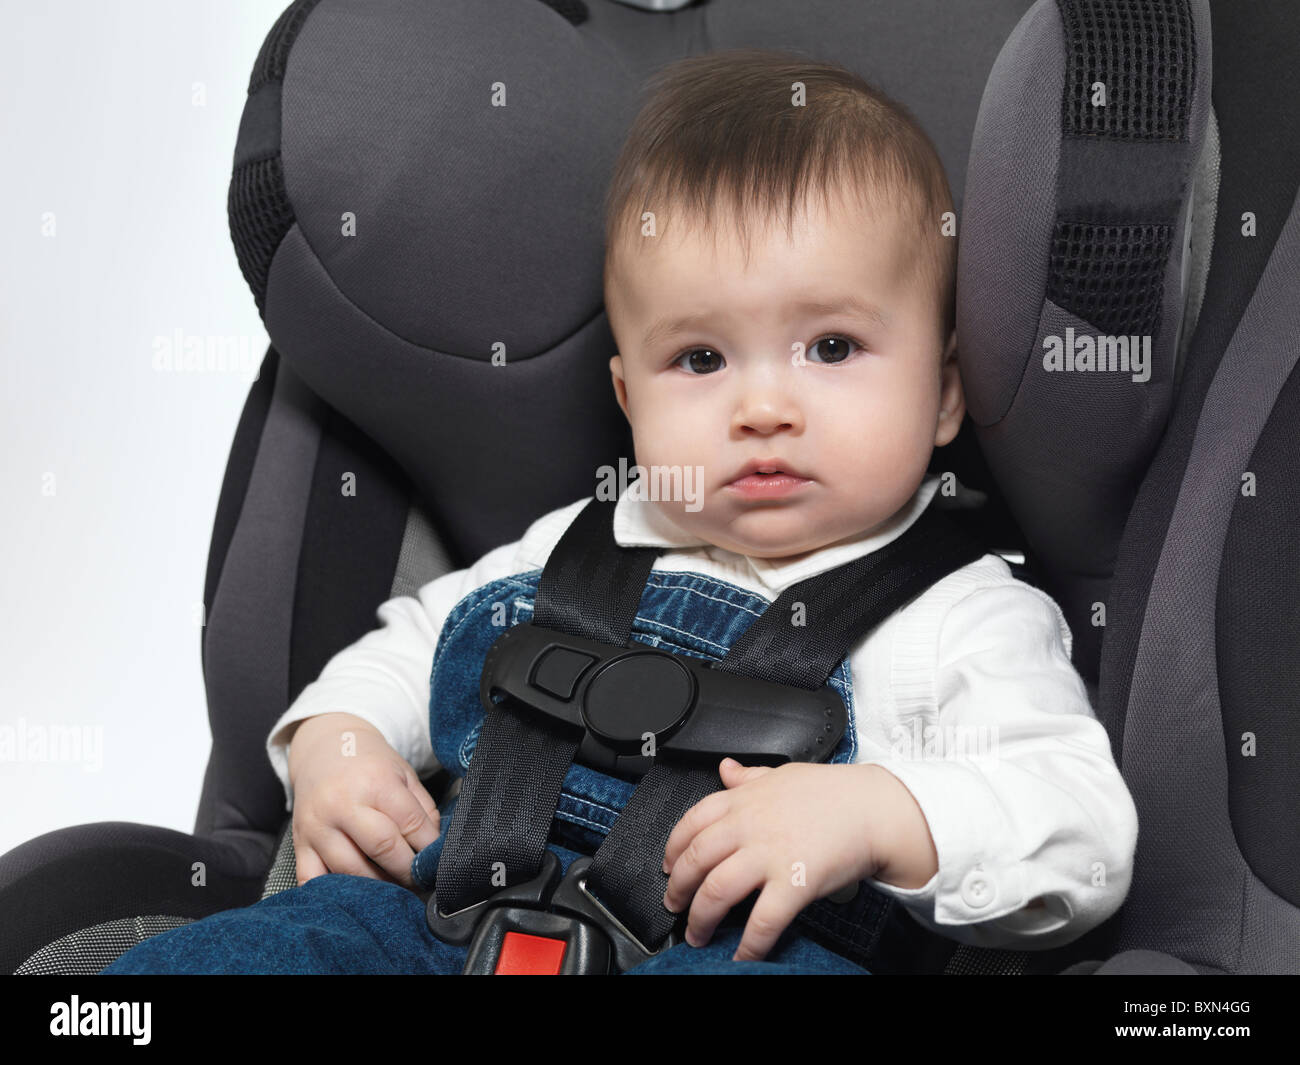 Seven month old baby sitting in a booster seat - Stock Image